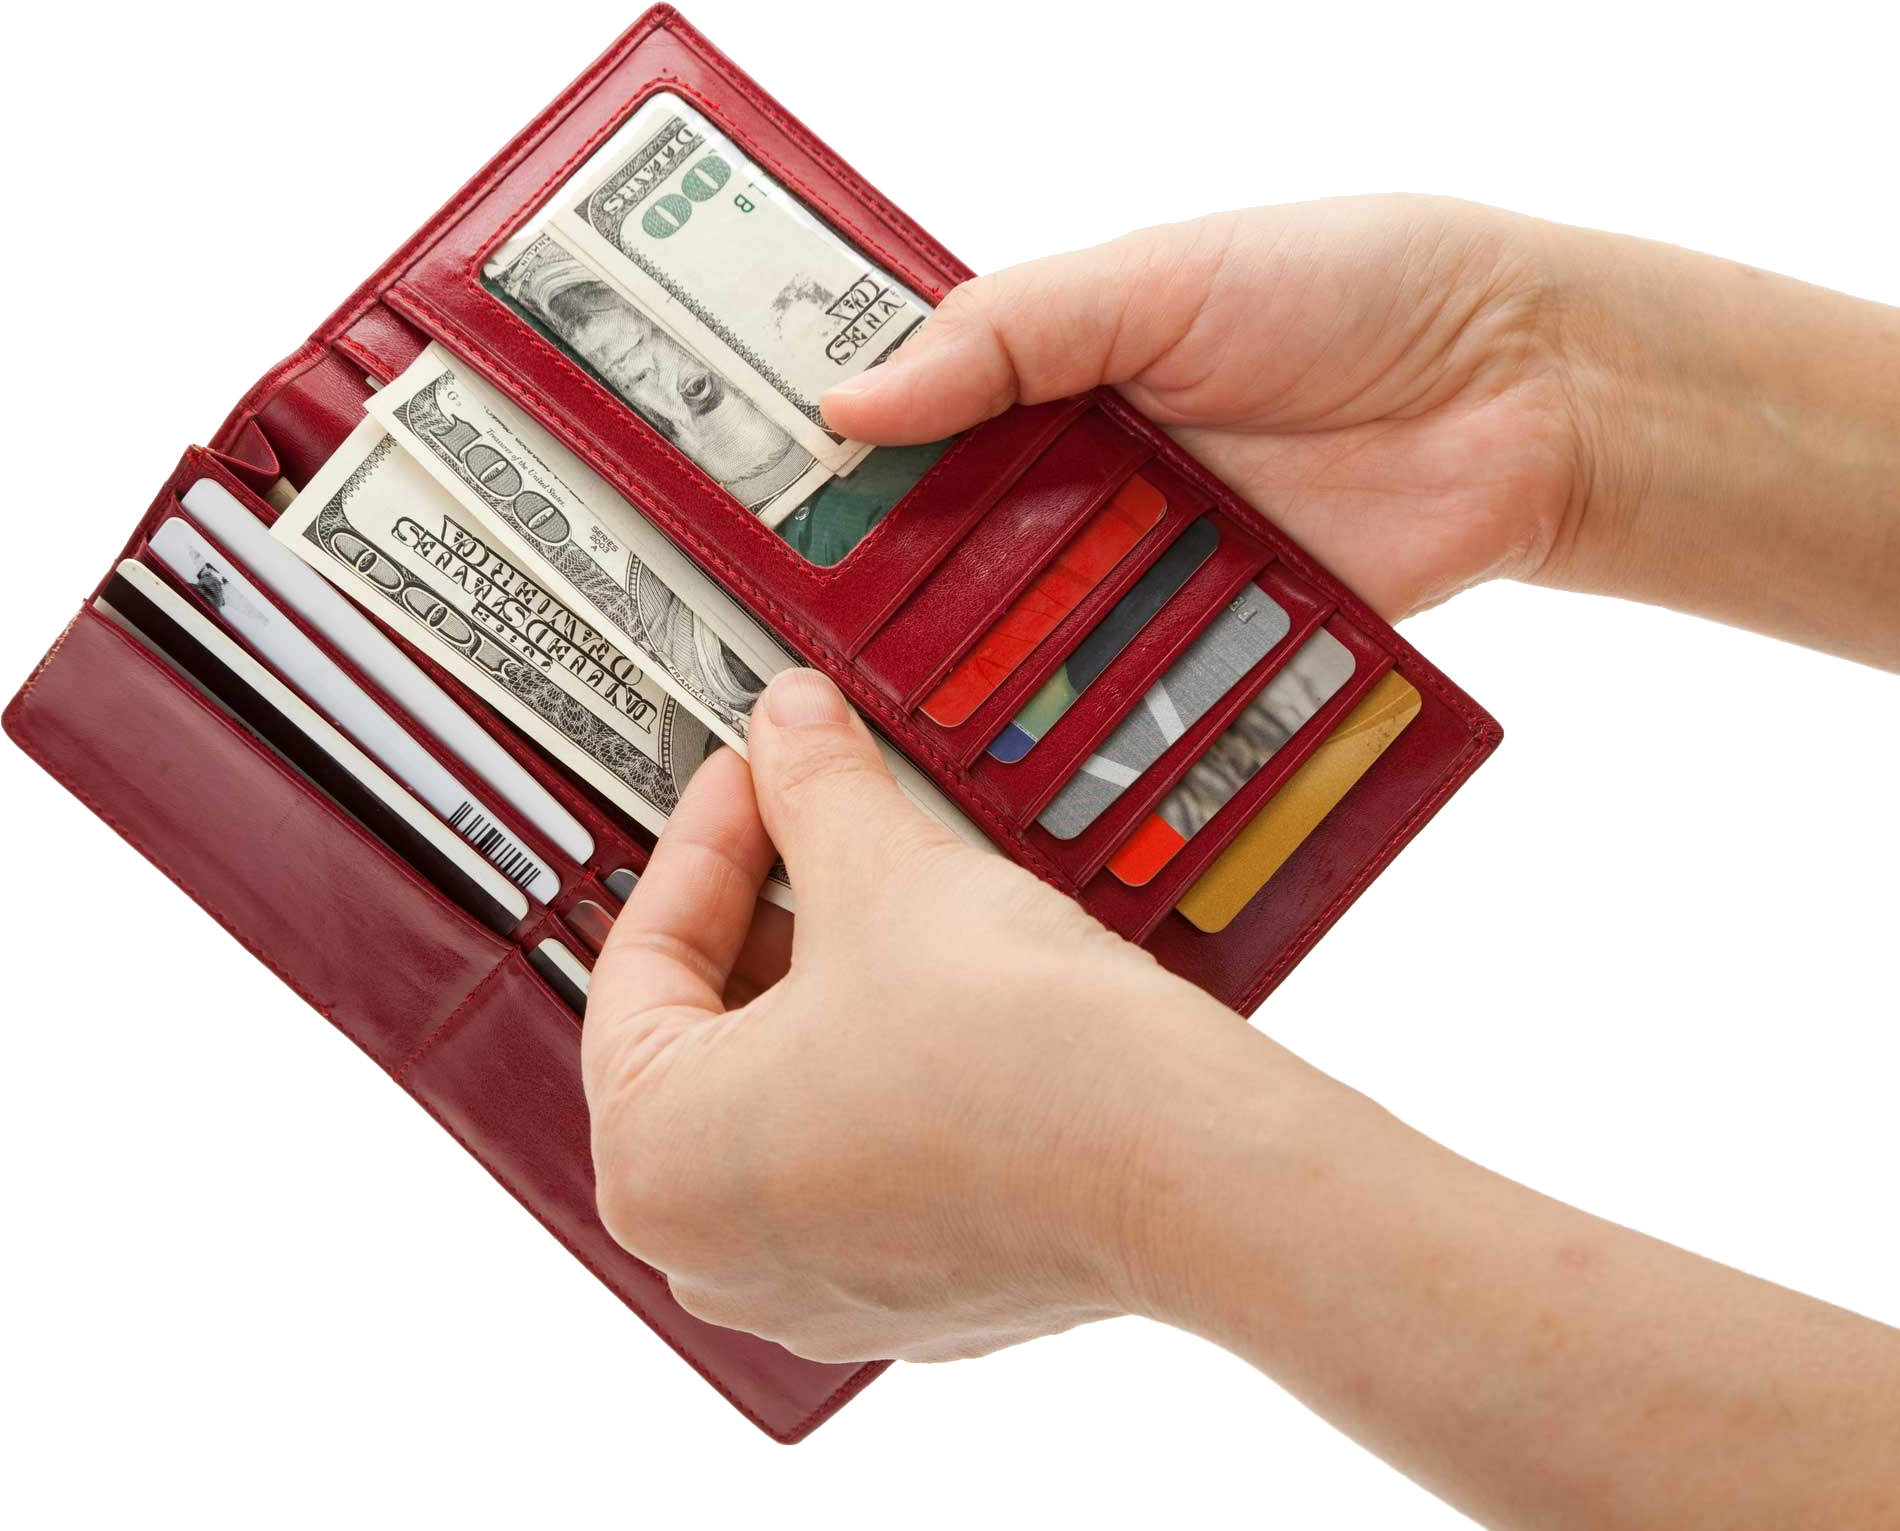 Wallet money clipart graphic freeuse stock Wallet With Money Transparent PNG Pictures - Free Icons and PNG ... graphic freeuse stock